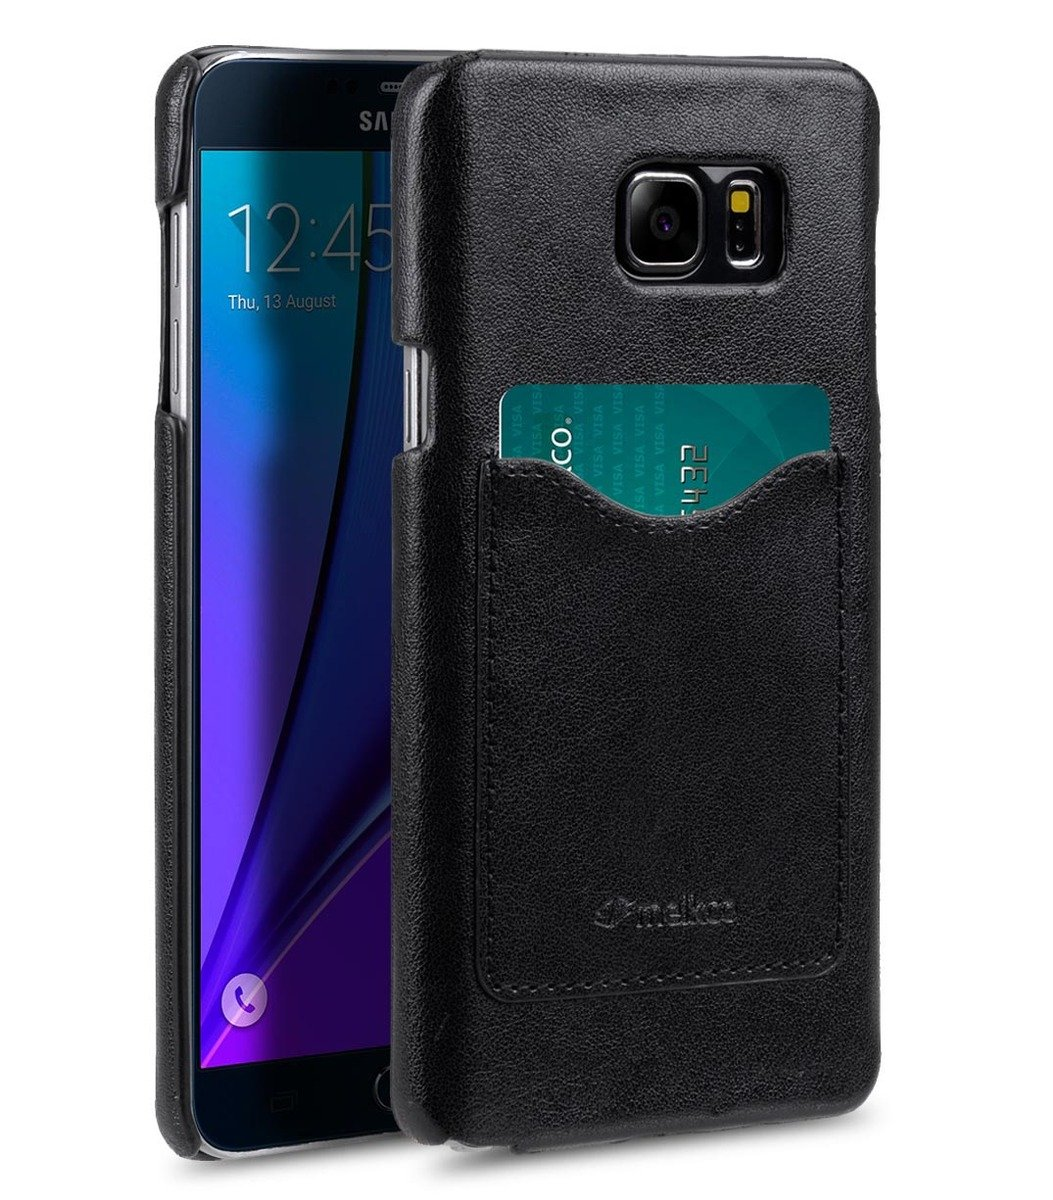 Samsung Galaxy Note 5 Card Slot Back Cover人造皮手機套 - 黑色